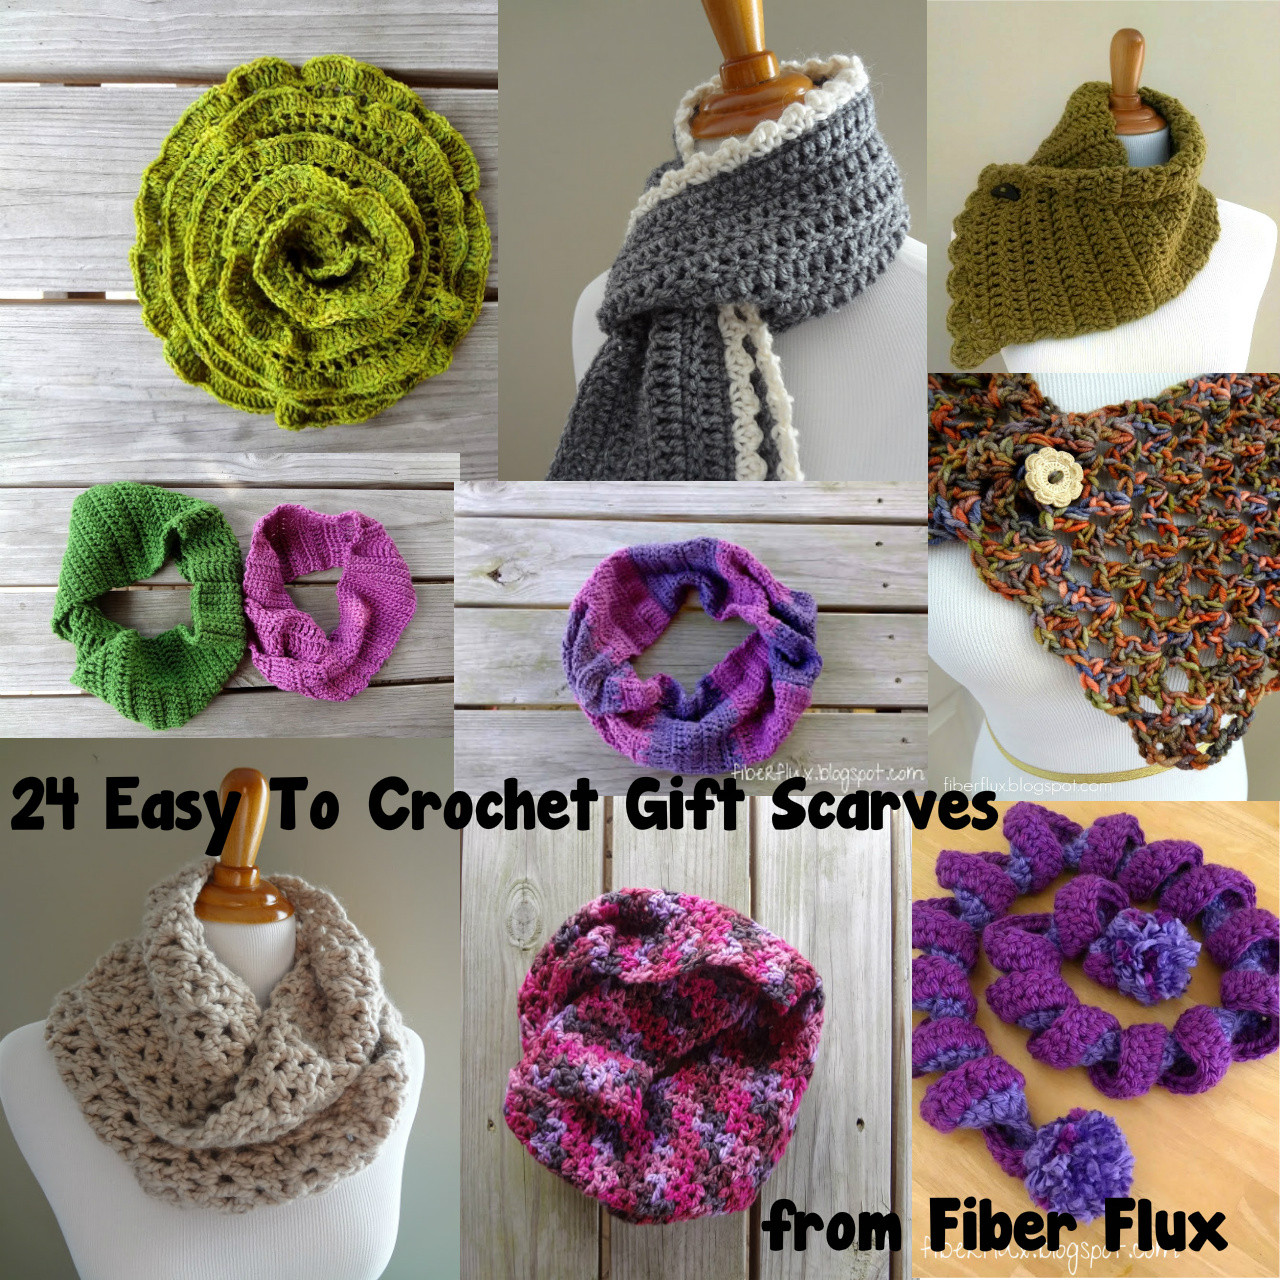 Unique Fiber Flux 24 Easy to Crochet Gift Scarves Easy Crochet Gifts Of Superb 42 Pictures Easy Crochet Gifts